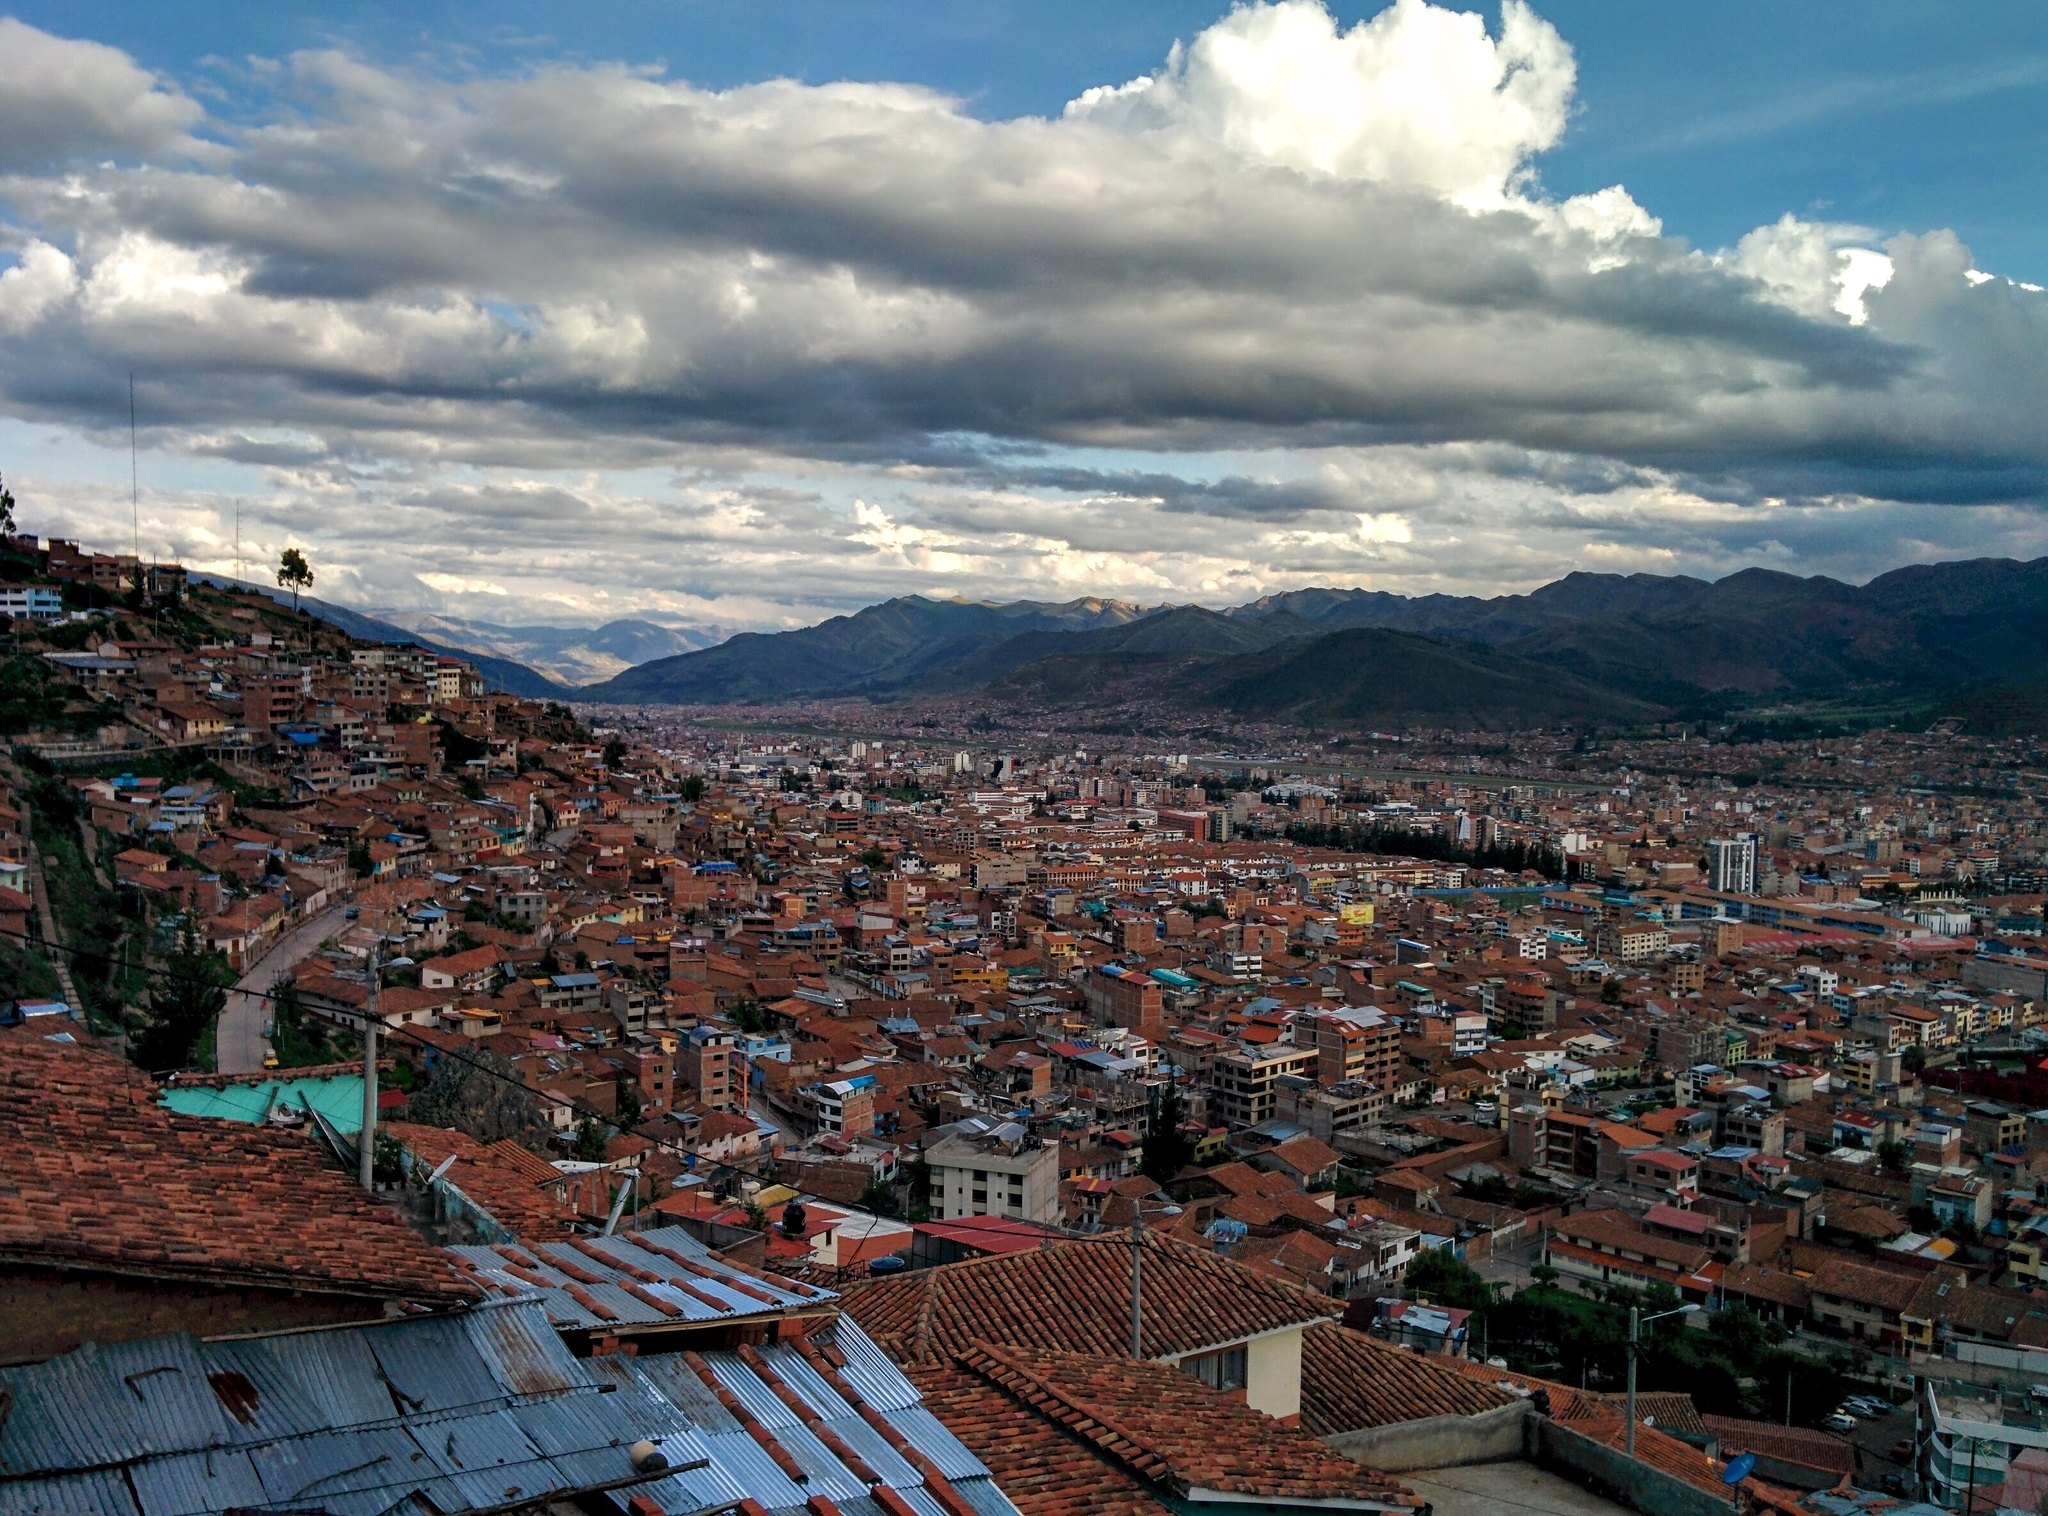 Cusco stretching into the valley